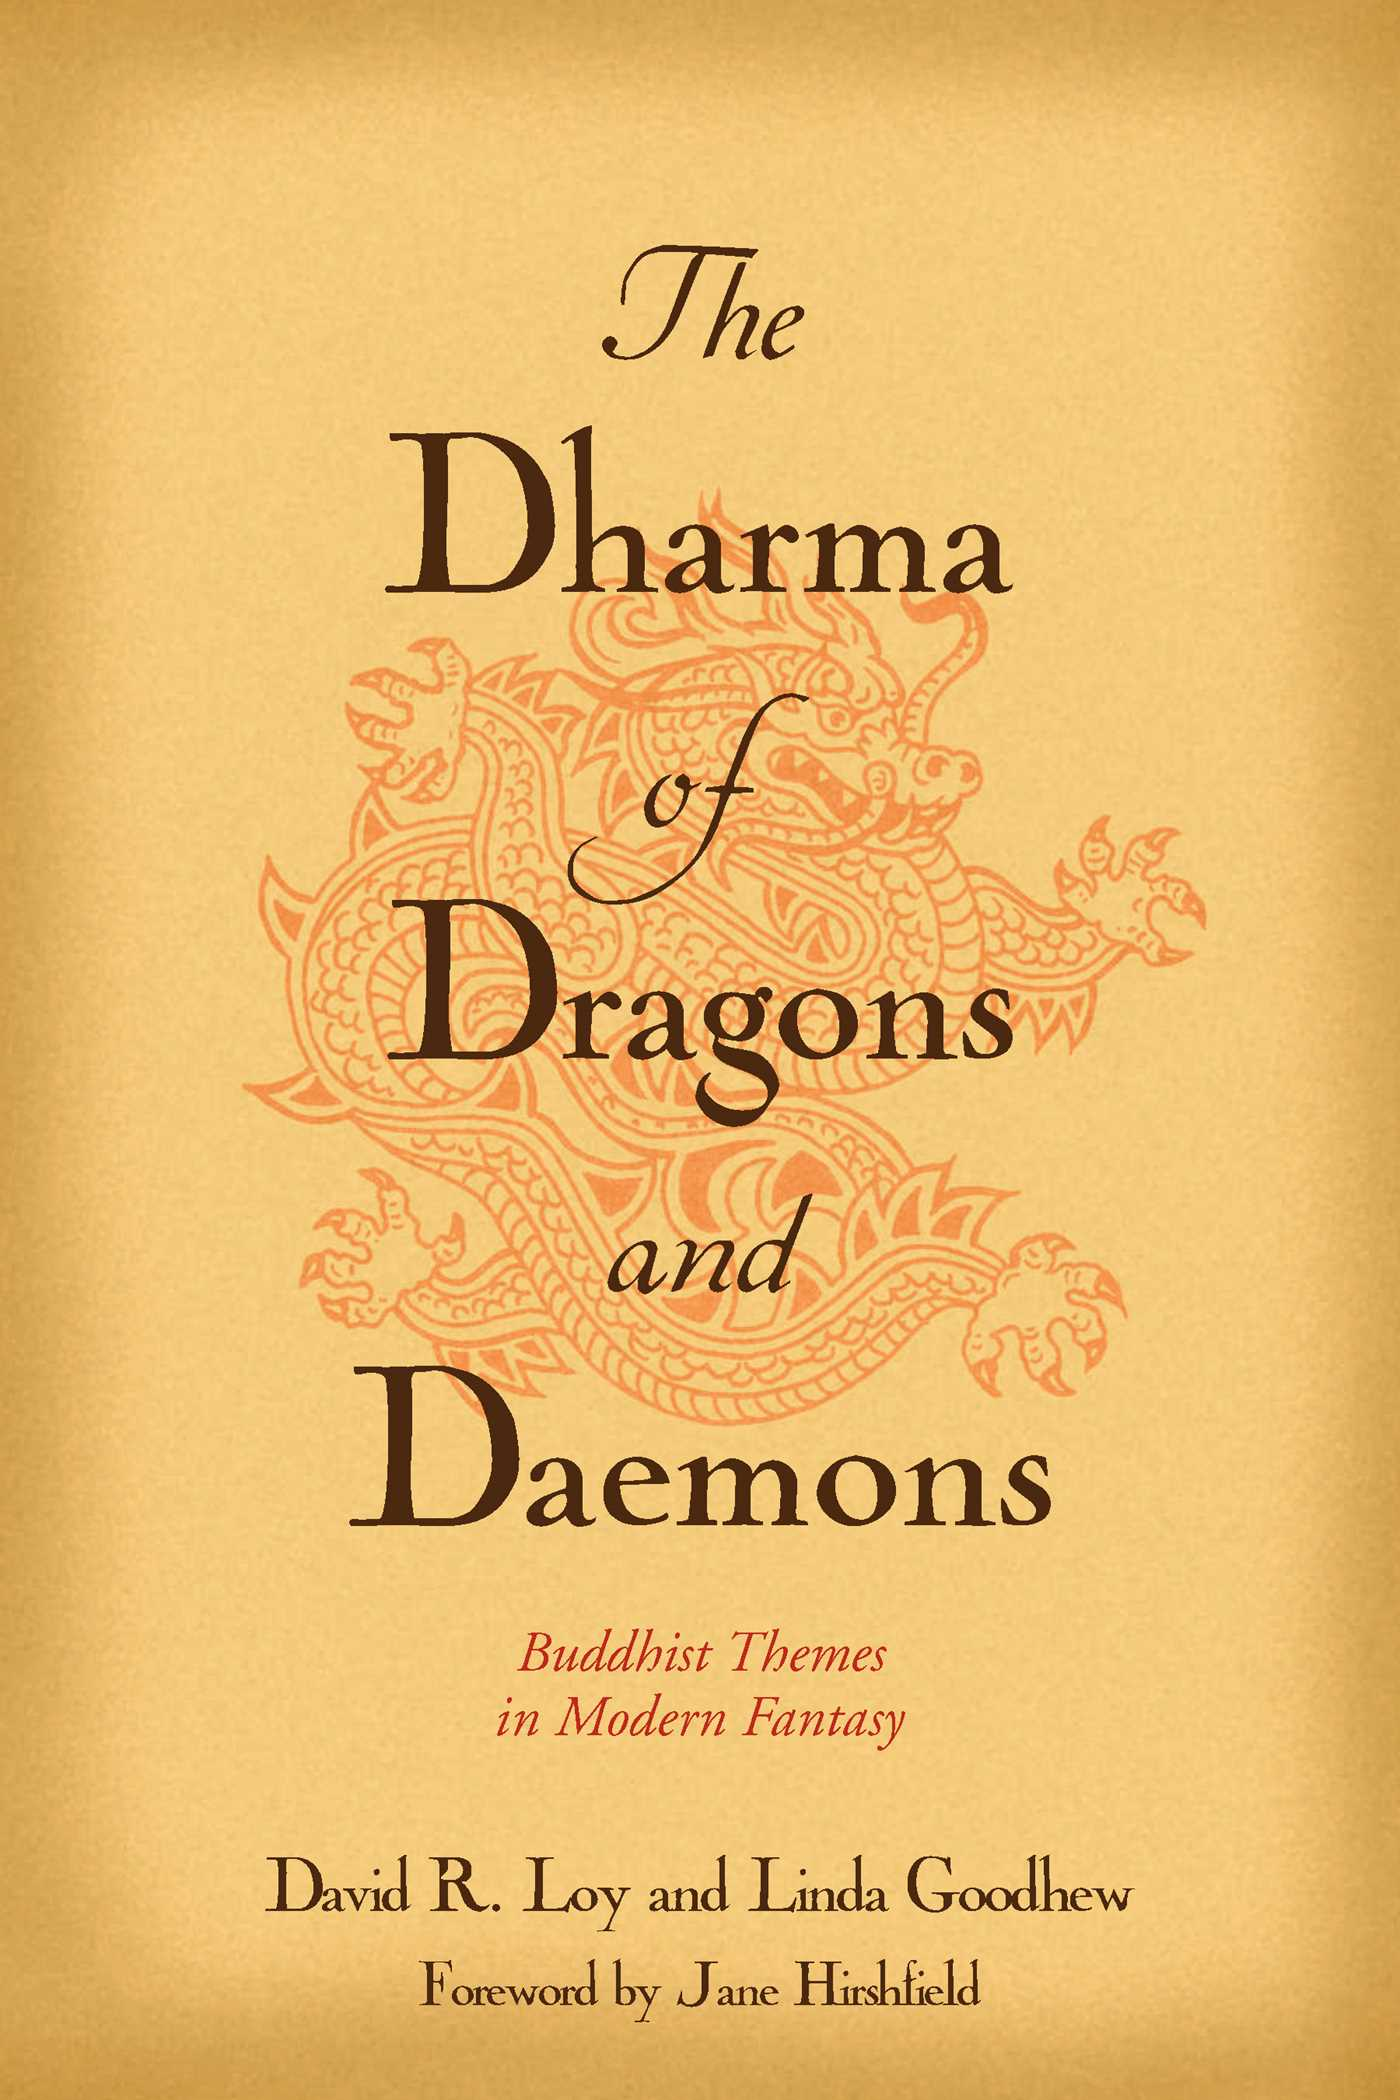 The dharma of dragons and daemons 9780861714766 hr